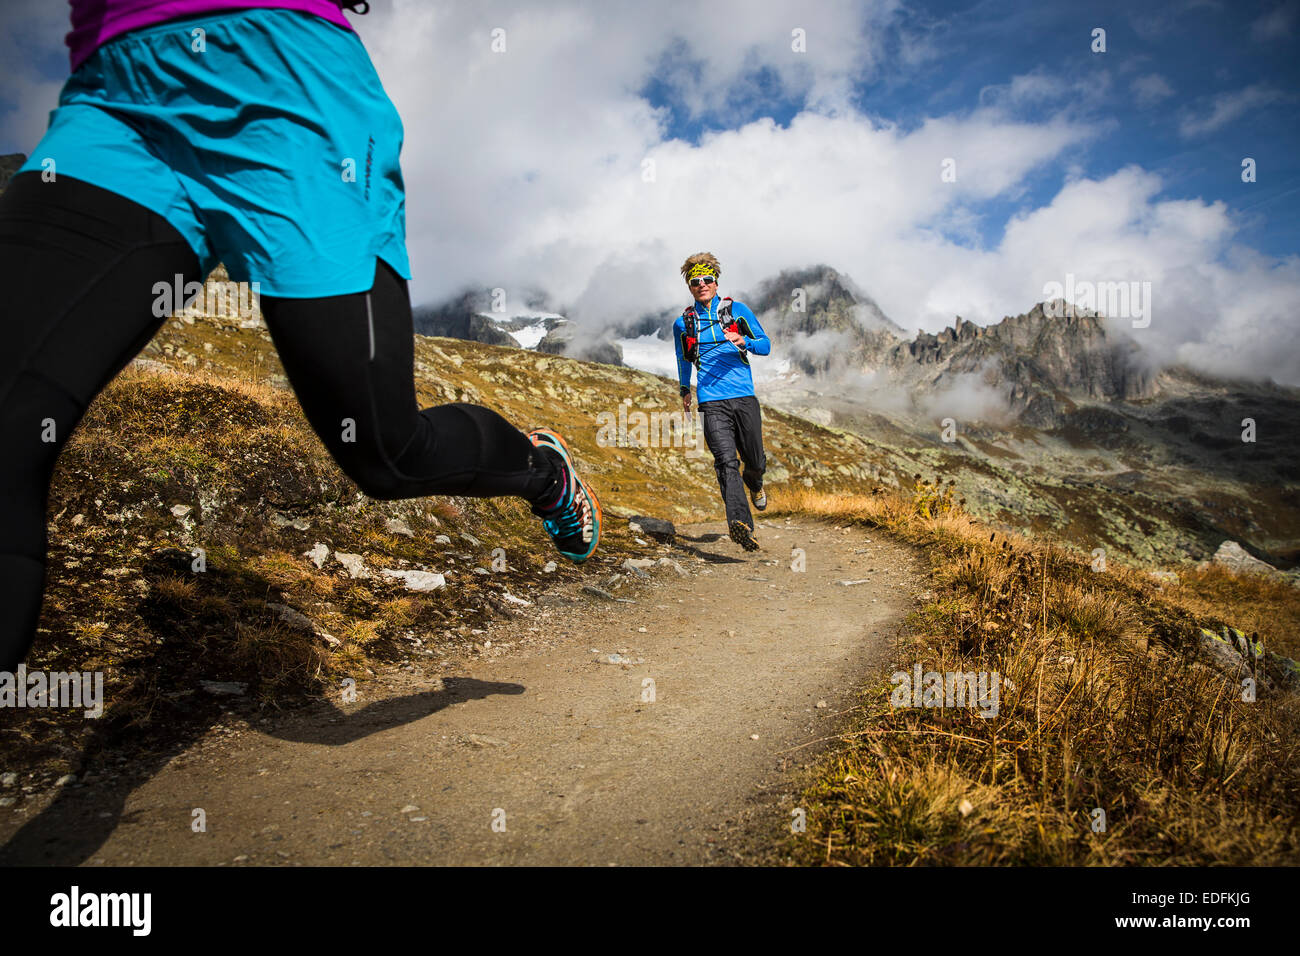 Le trail running, Furka, Suisse Photo Stock